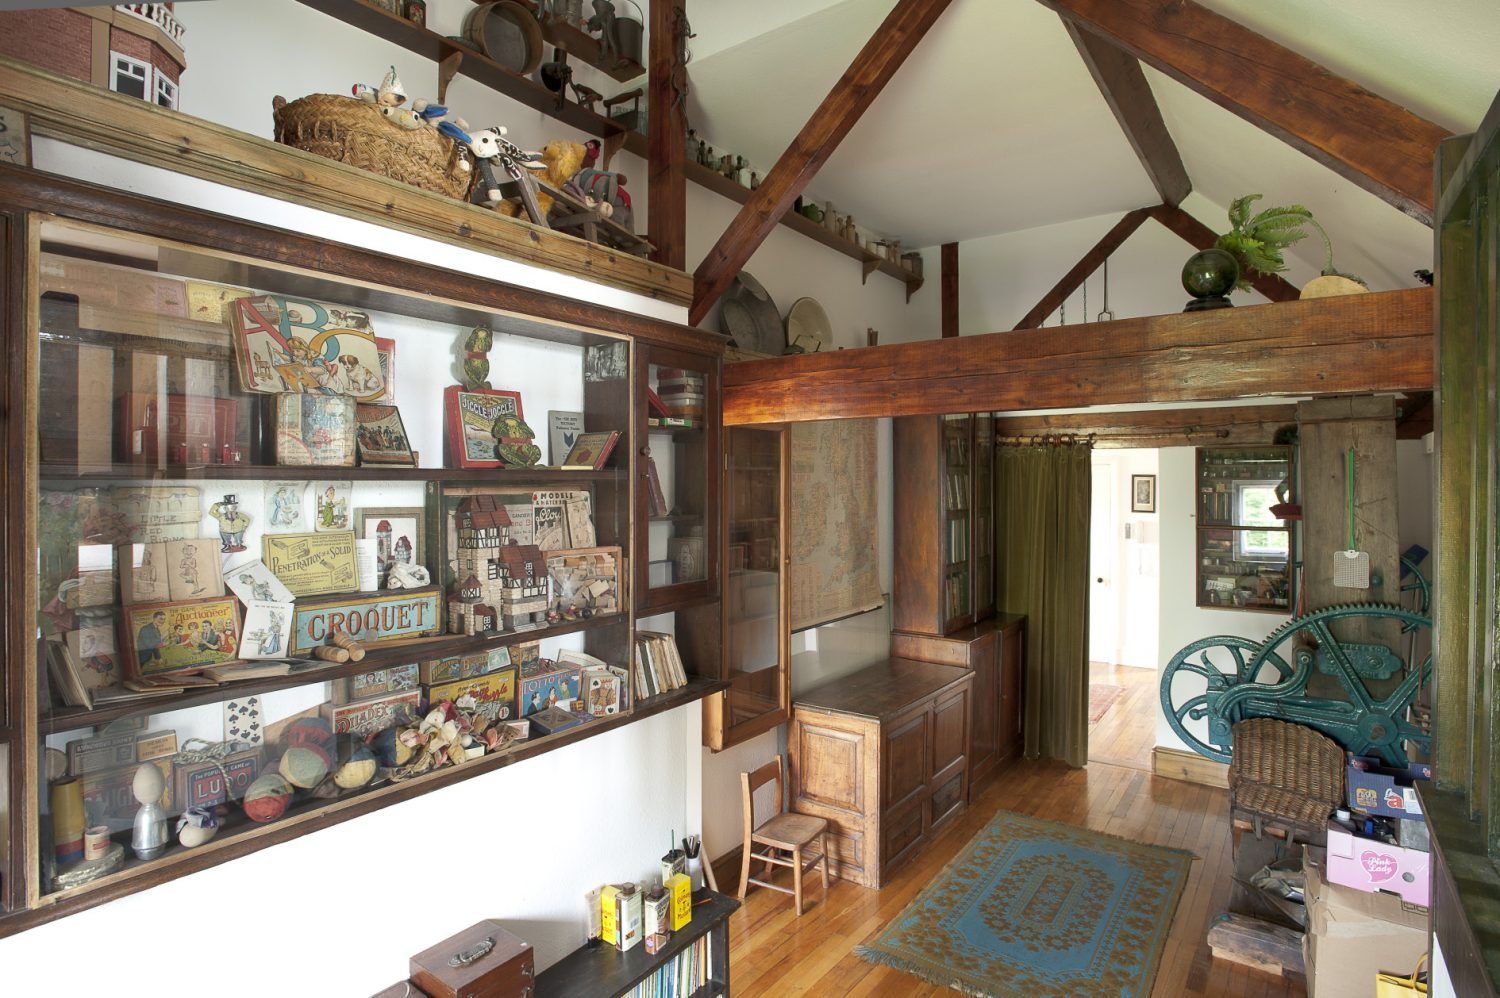 Upstairs a secondary hallway, home to an old hop press, has walls festooned with old farm tools, cabinets filled with children's games and writing and drawing tools